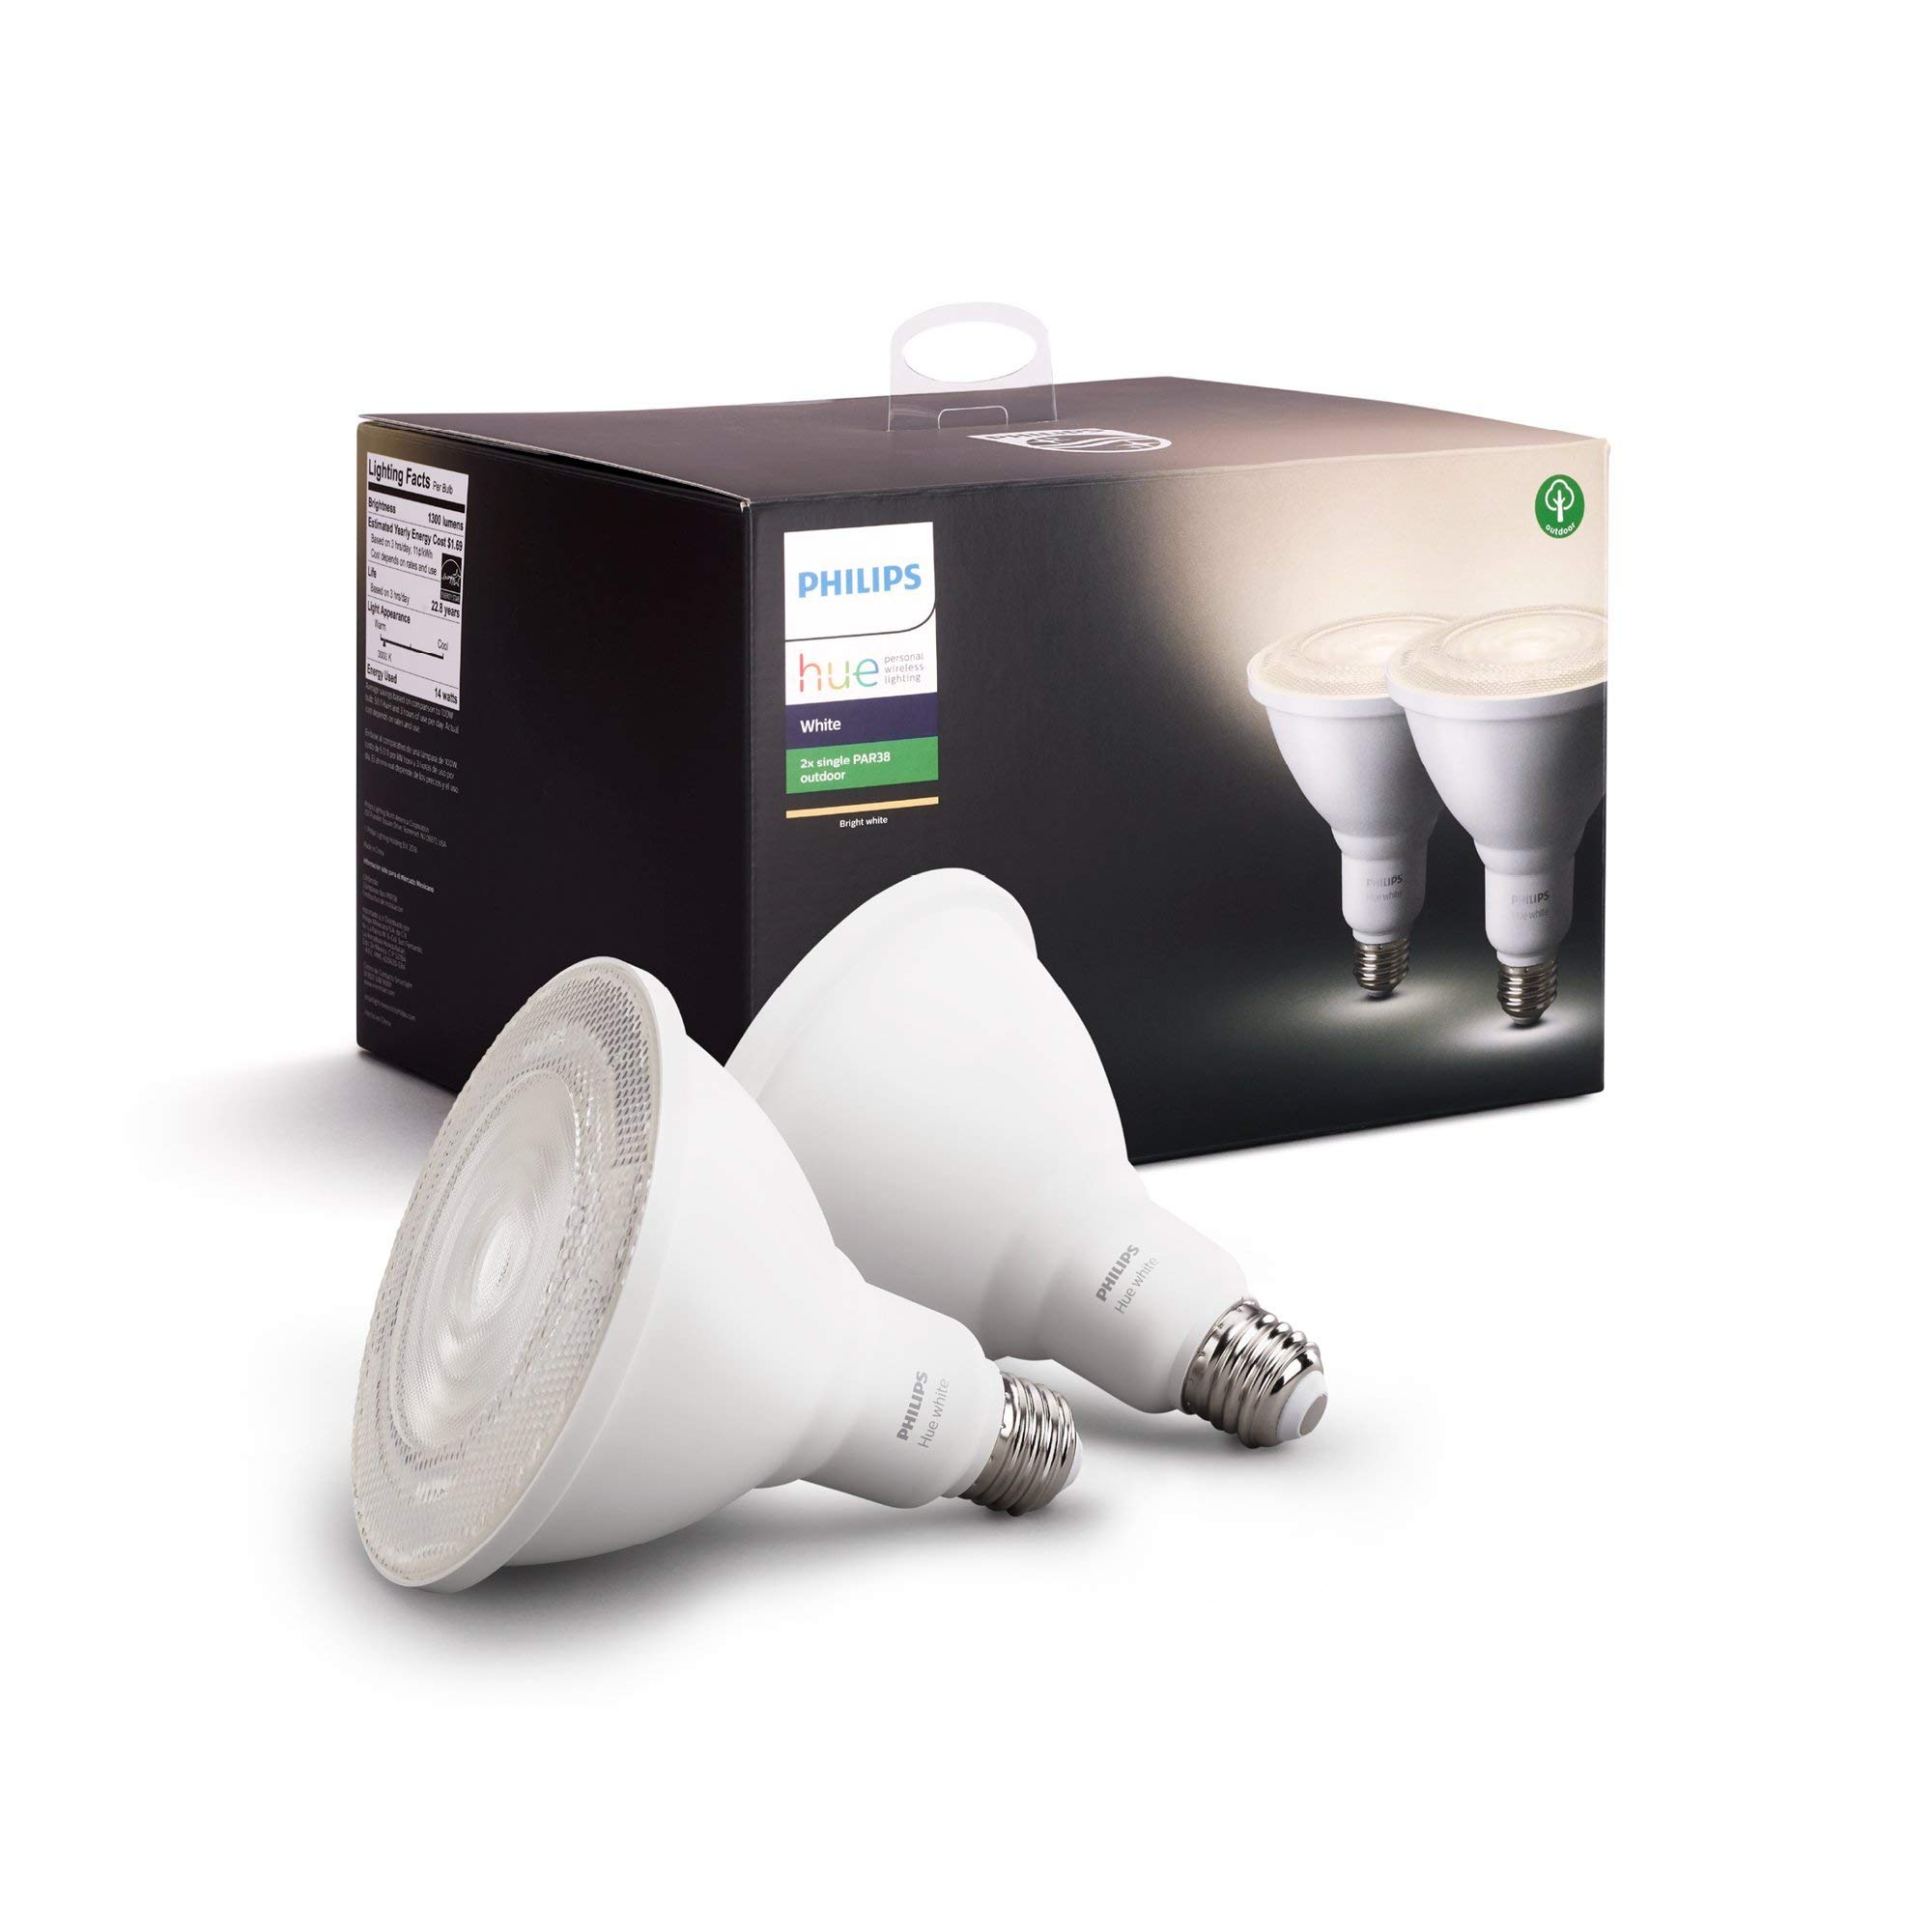 Philips Hue White Outdoor PAR38 13W Smart Bulbs (Philips Hue Hub required), 2 White PAR38 LED Smart Bulbs, Works with Alexa, Apple HomeKit and Google Assistant (Renewed)